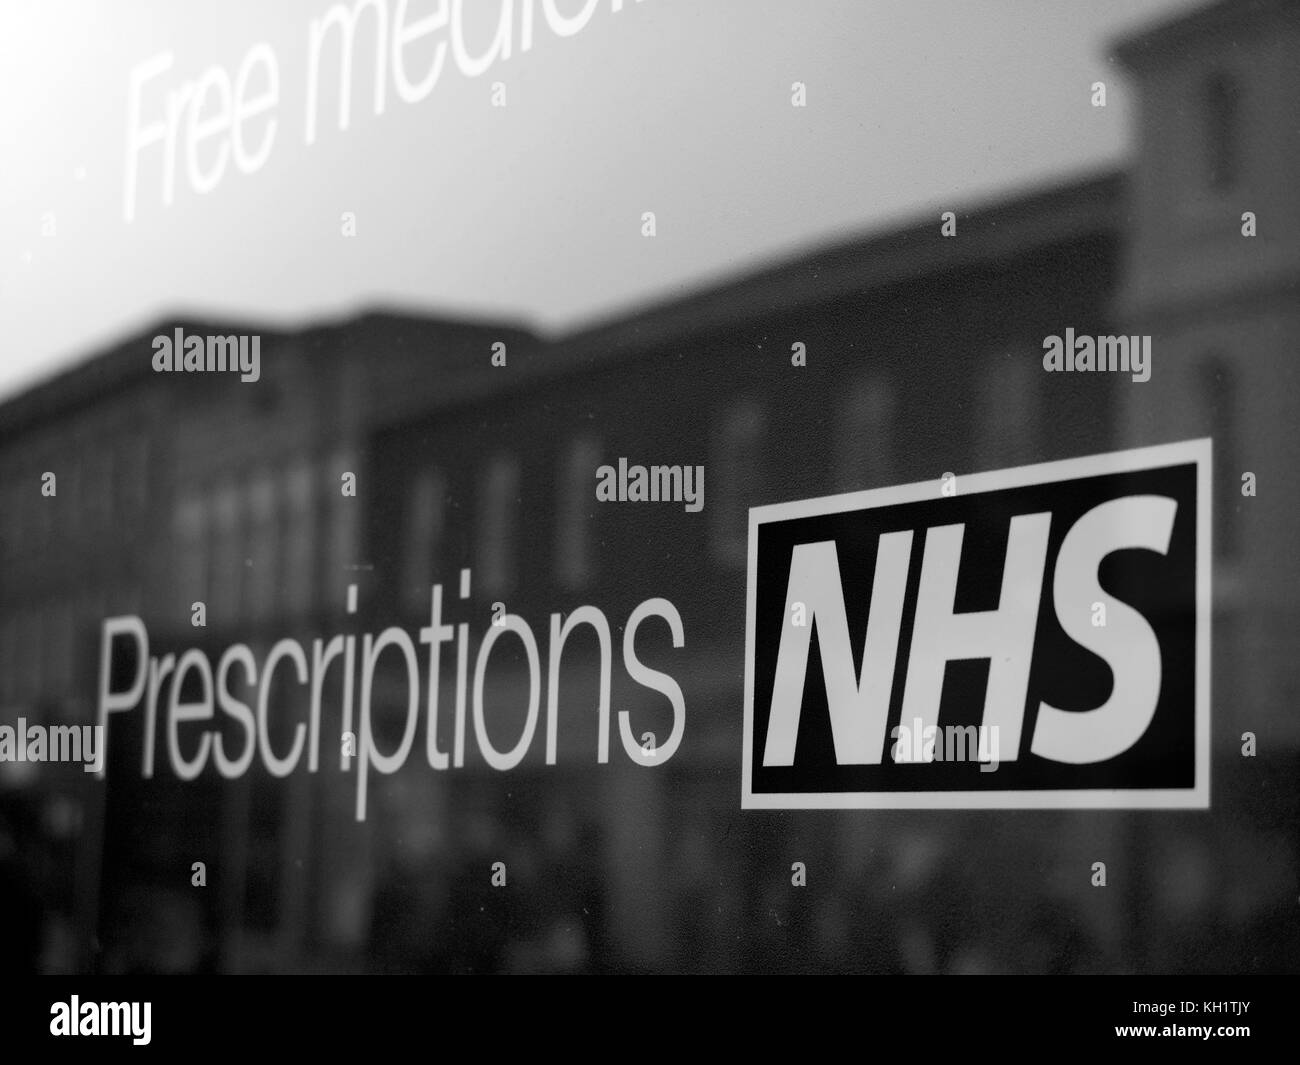 National Health Service prescriptions sign in pharmacy shop window - Stock Image